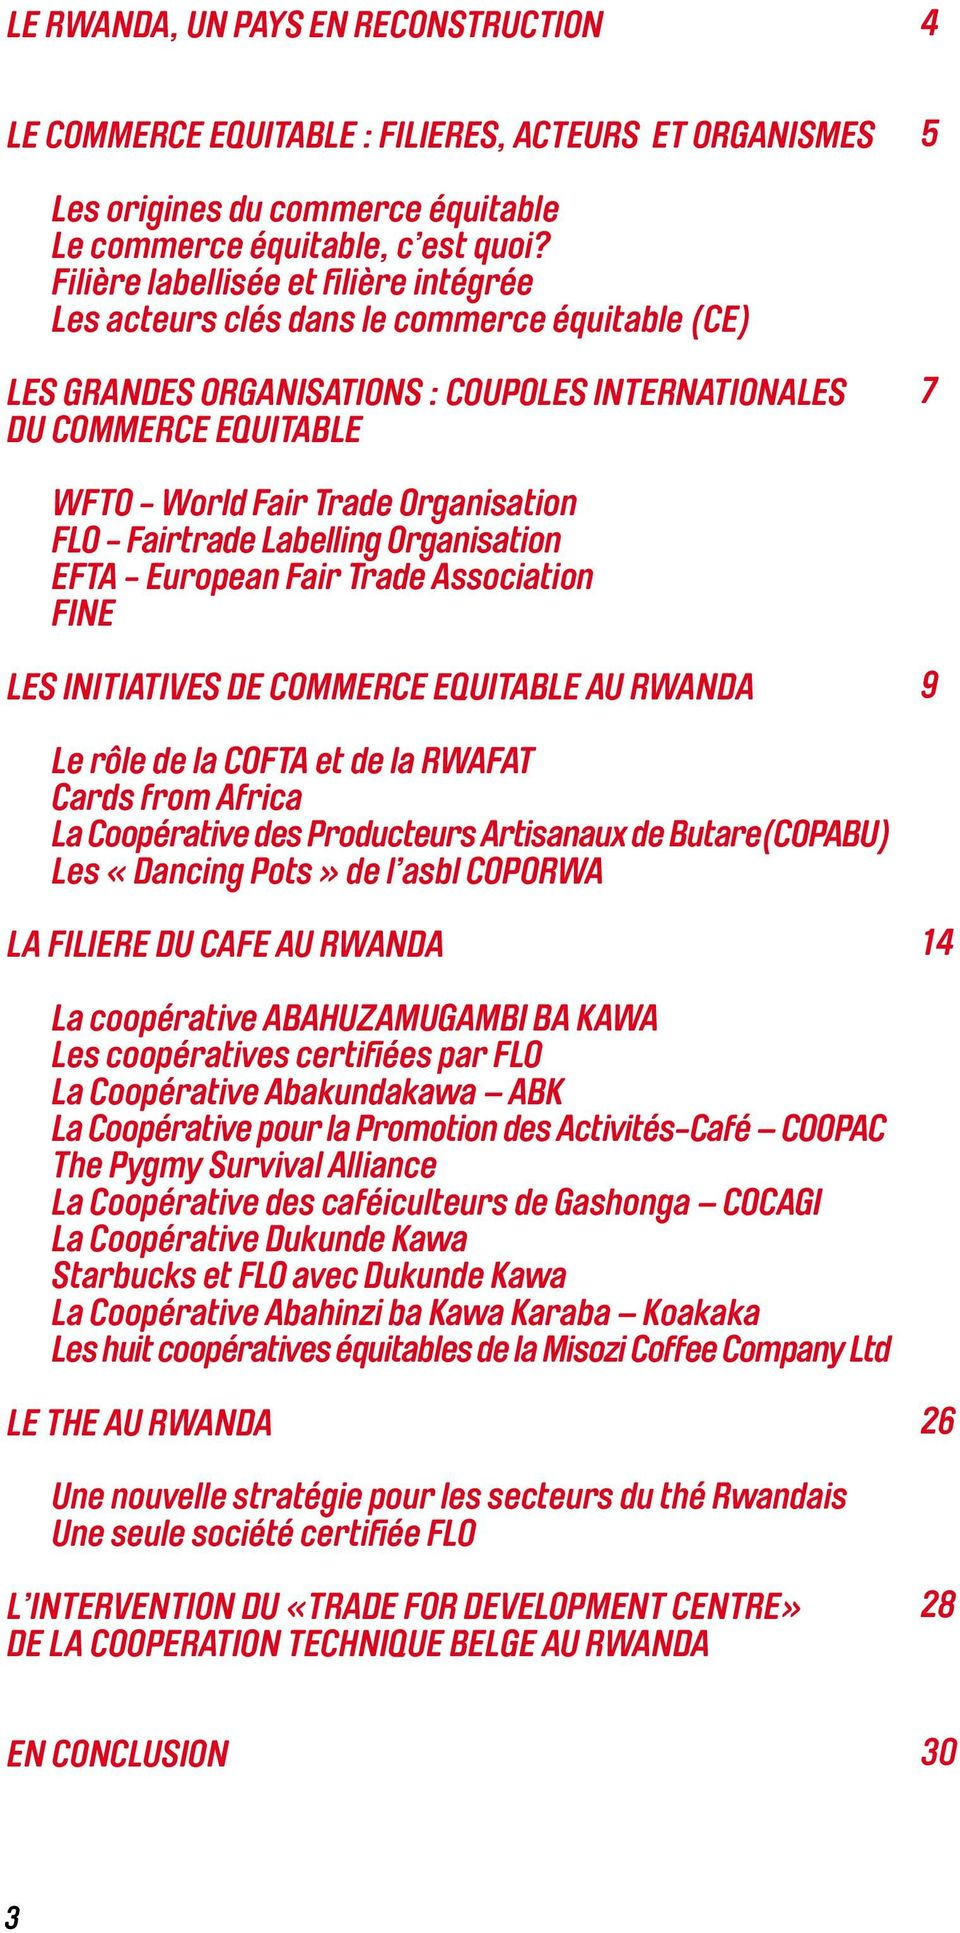 Organisation FLO - Fairtrade Labelling Organisation EFTA - European Fair Trade Association FINE LES INITIATIVES DE COMMERCE EQUITABLE AU RWANDA 9 Le rôle de la COFTA et de la RWAFAT Cards from Africa